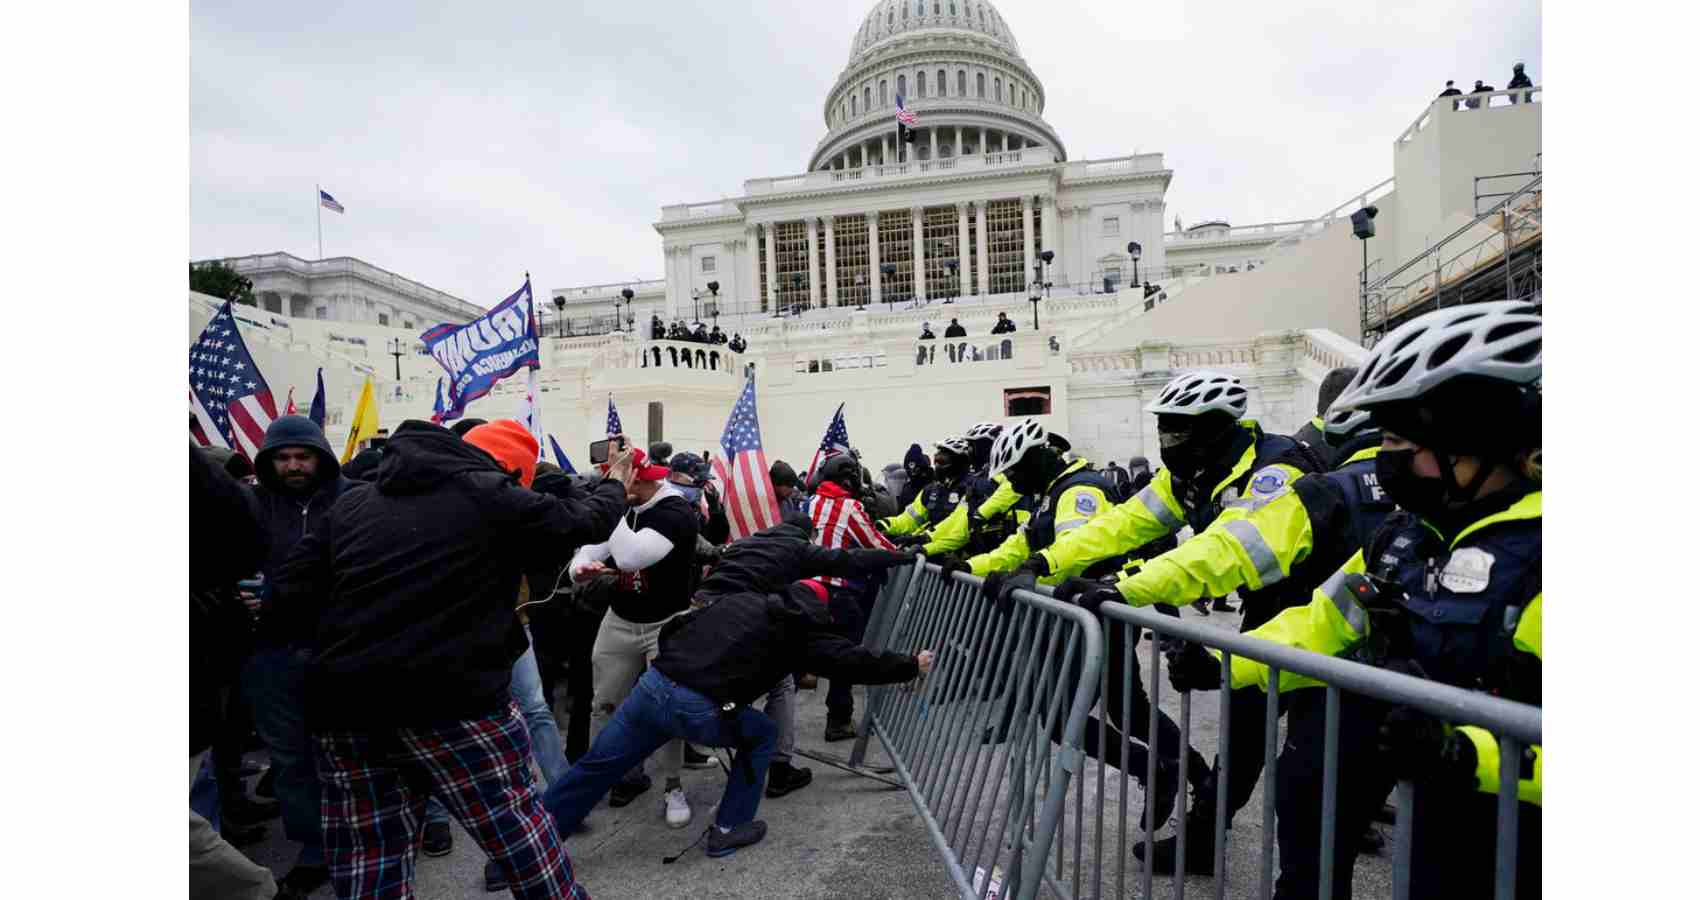 After Senate's Failure, House Plans To Launch Probe Of Insurrection By Trumpists